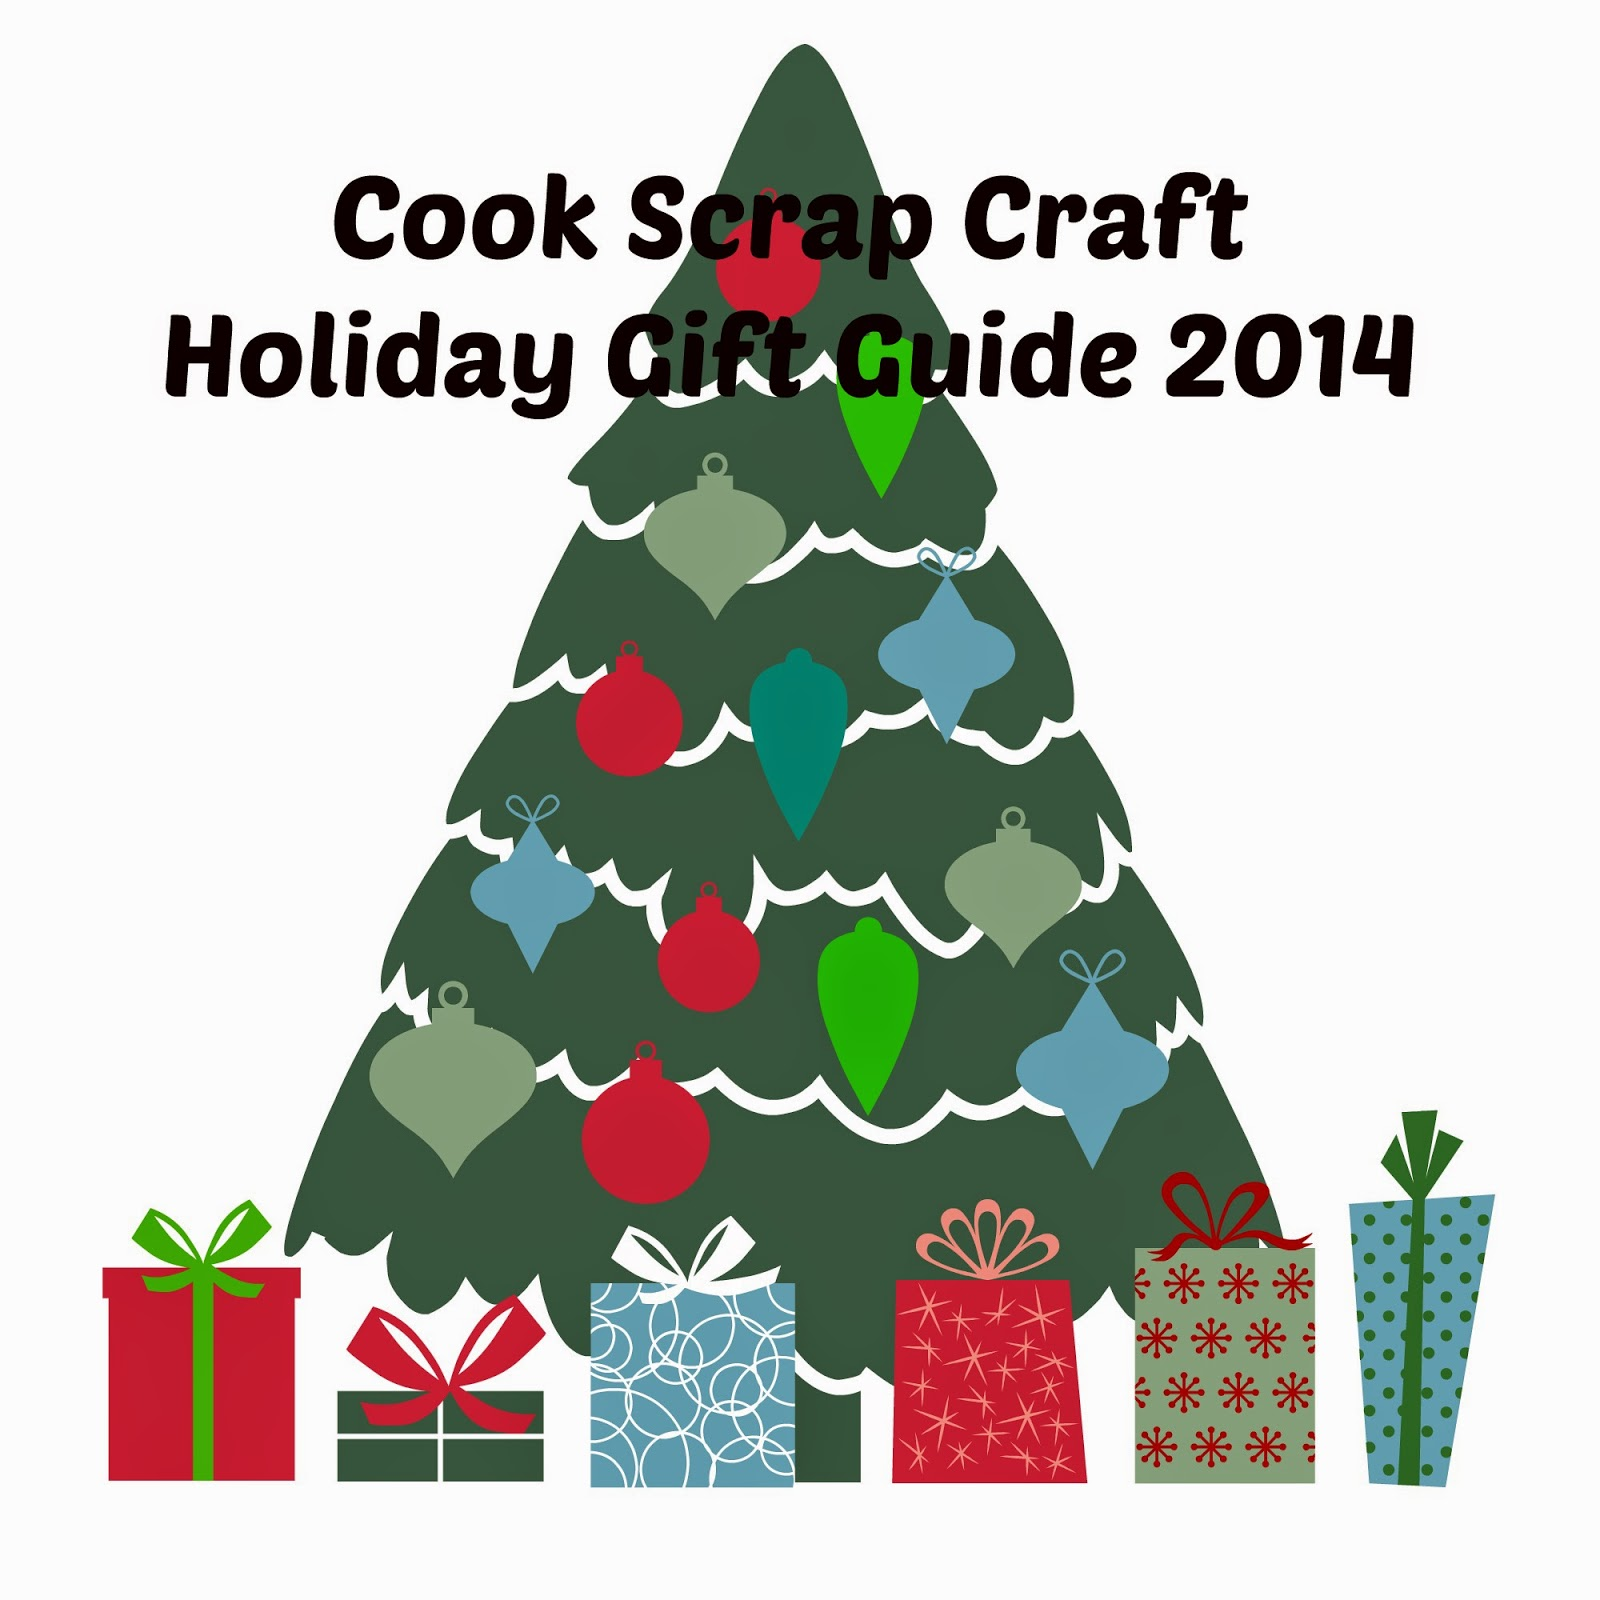 Cook Scrap Craft: Top 5 Food Gifts - Holiday Gift Guide